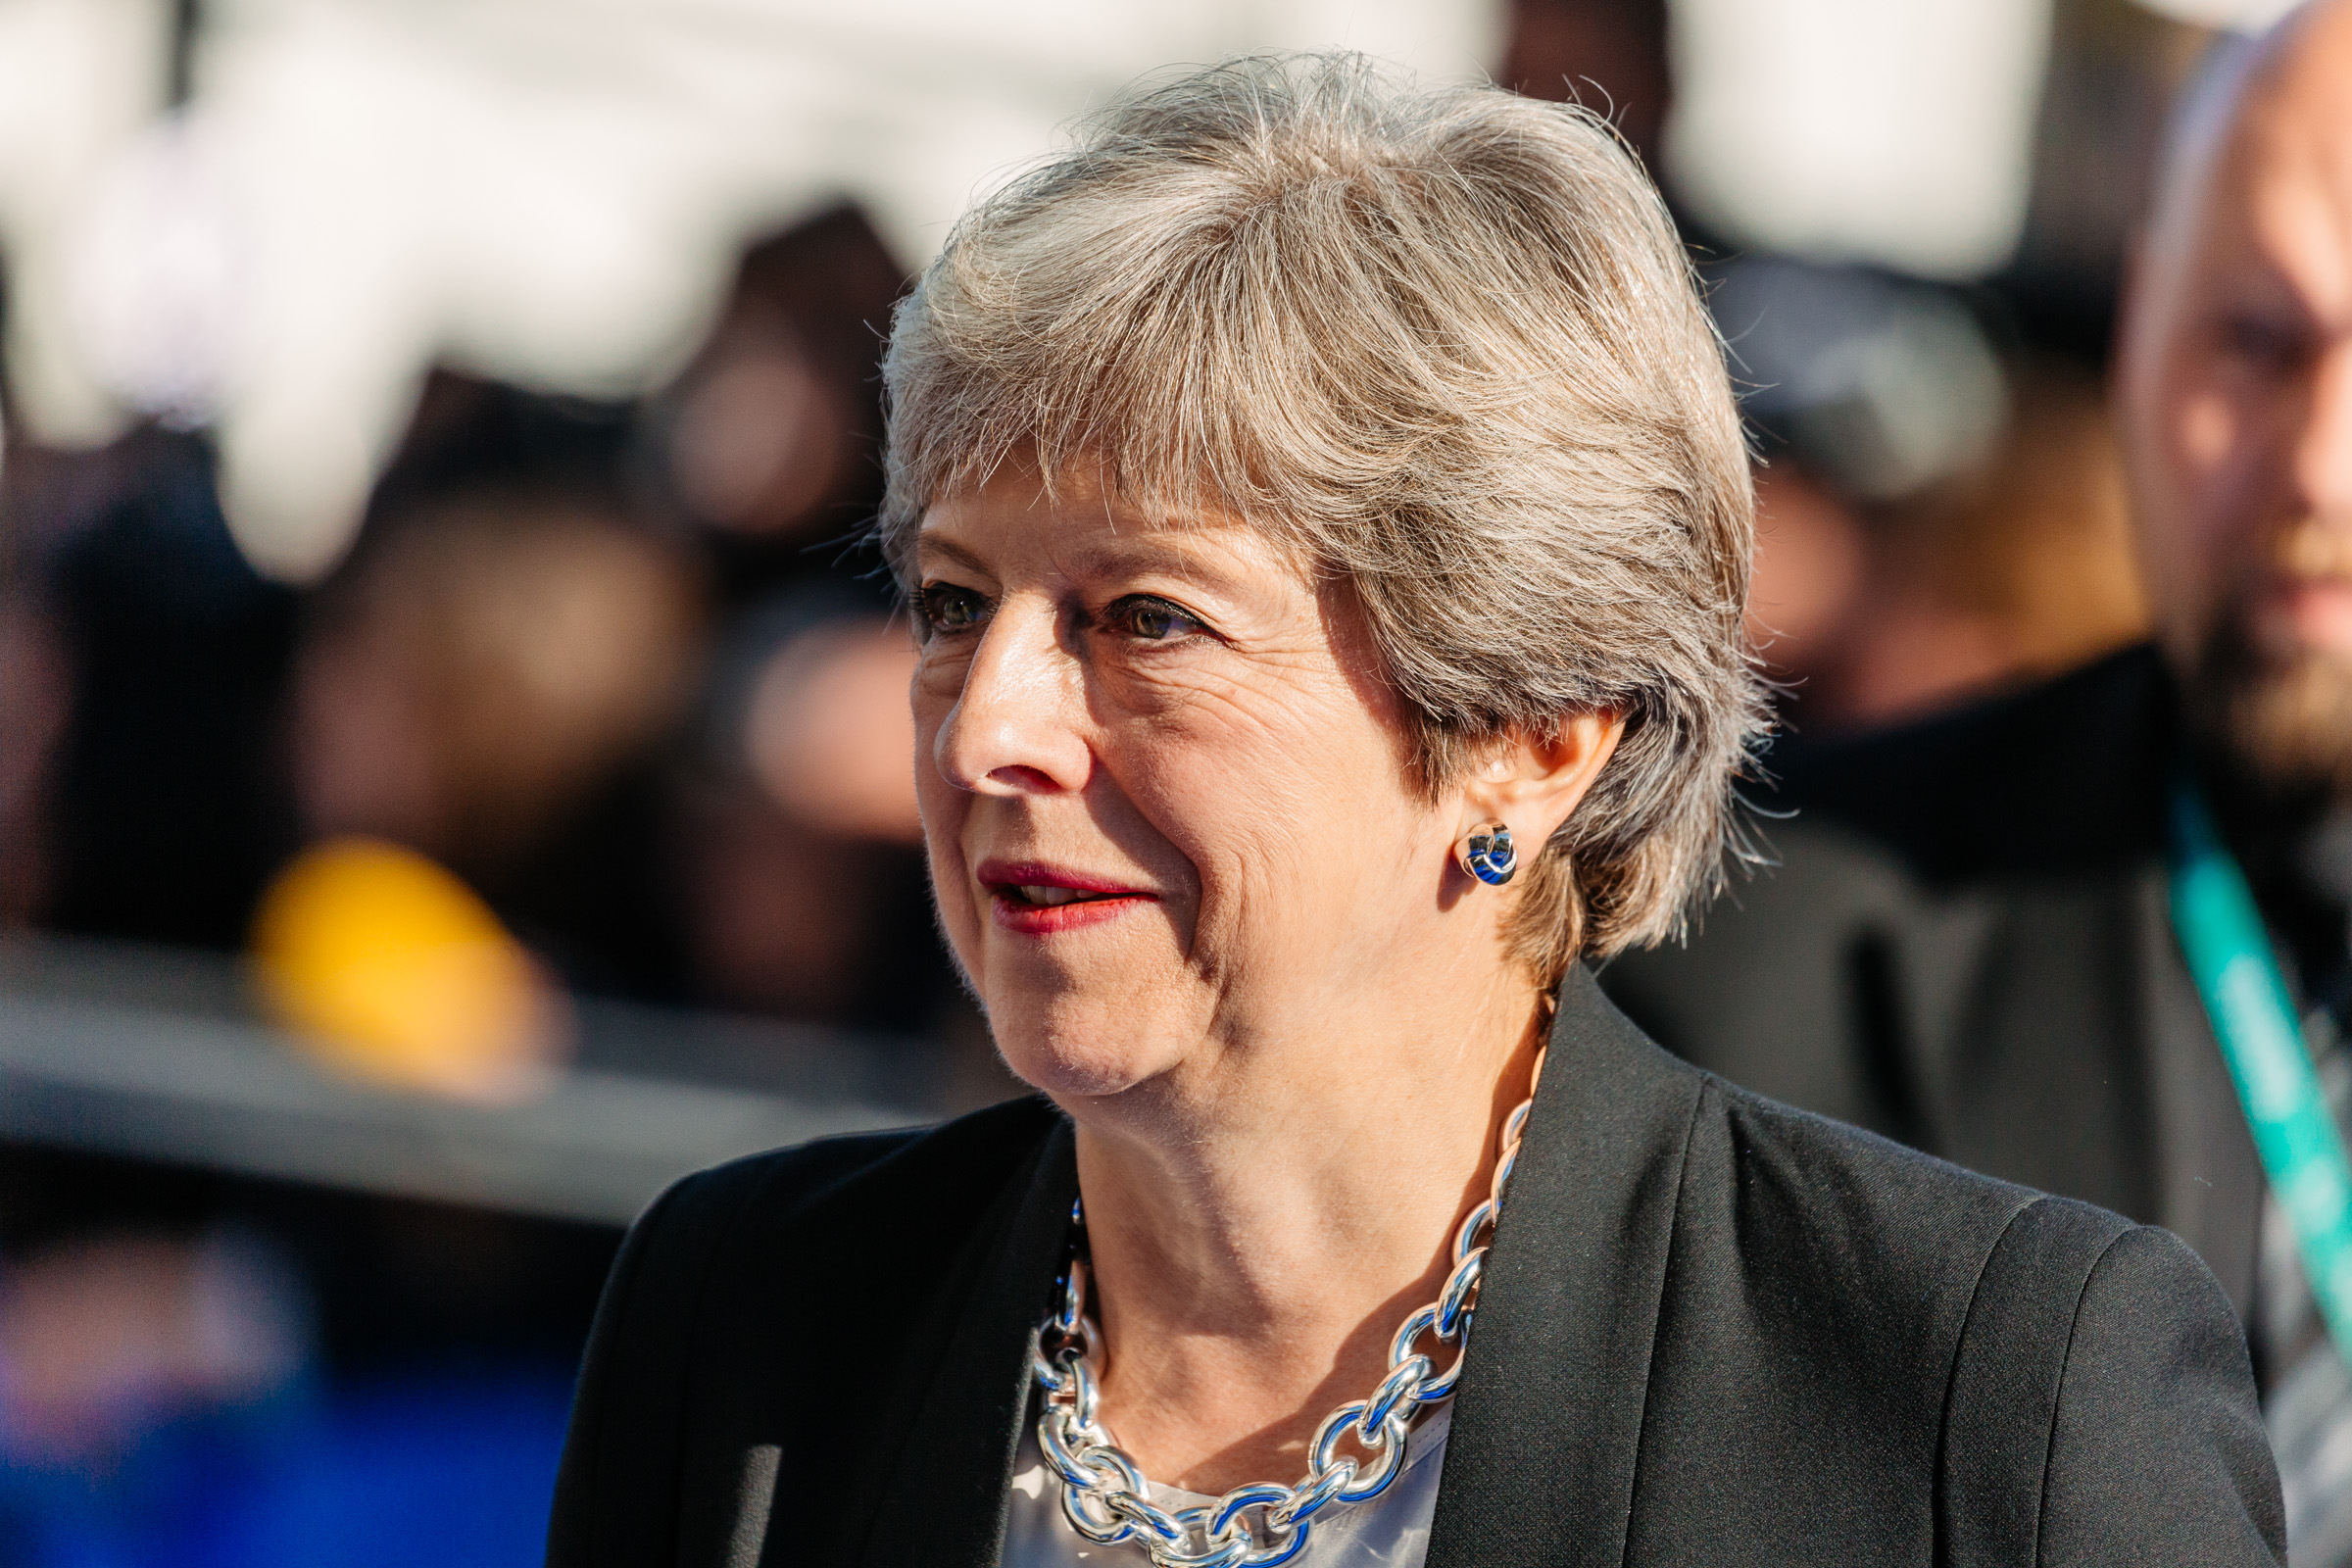 Theresa May, Leader of the British Conservative Party